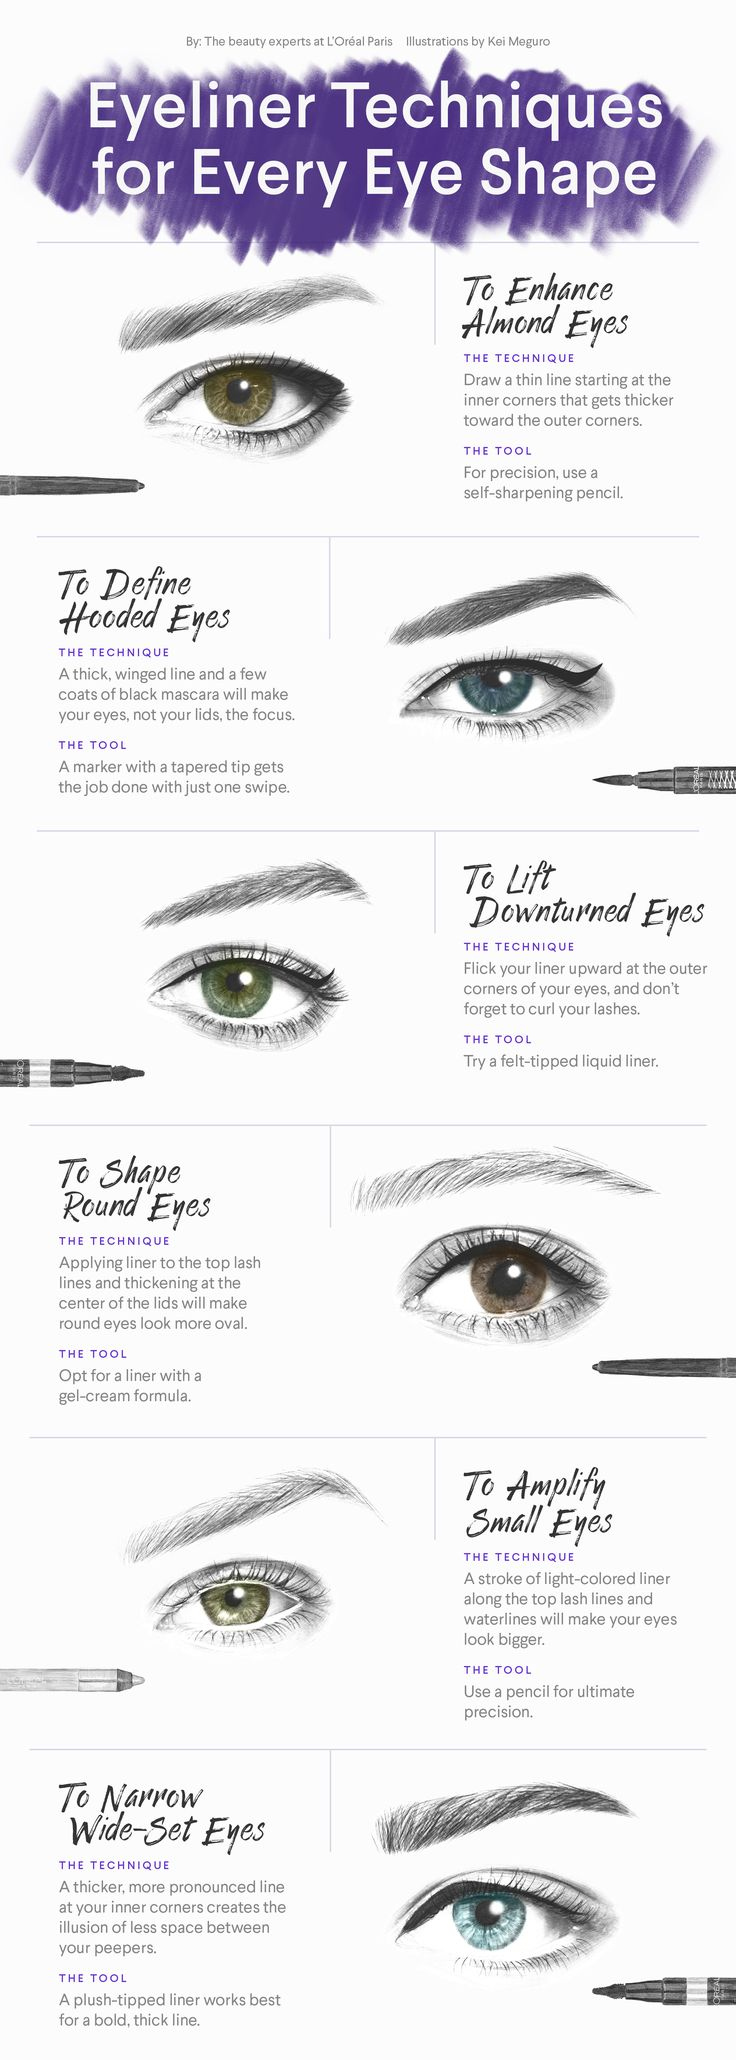 The best eyeliner techniques for every eye shape - AOL